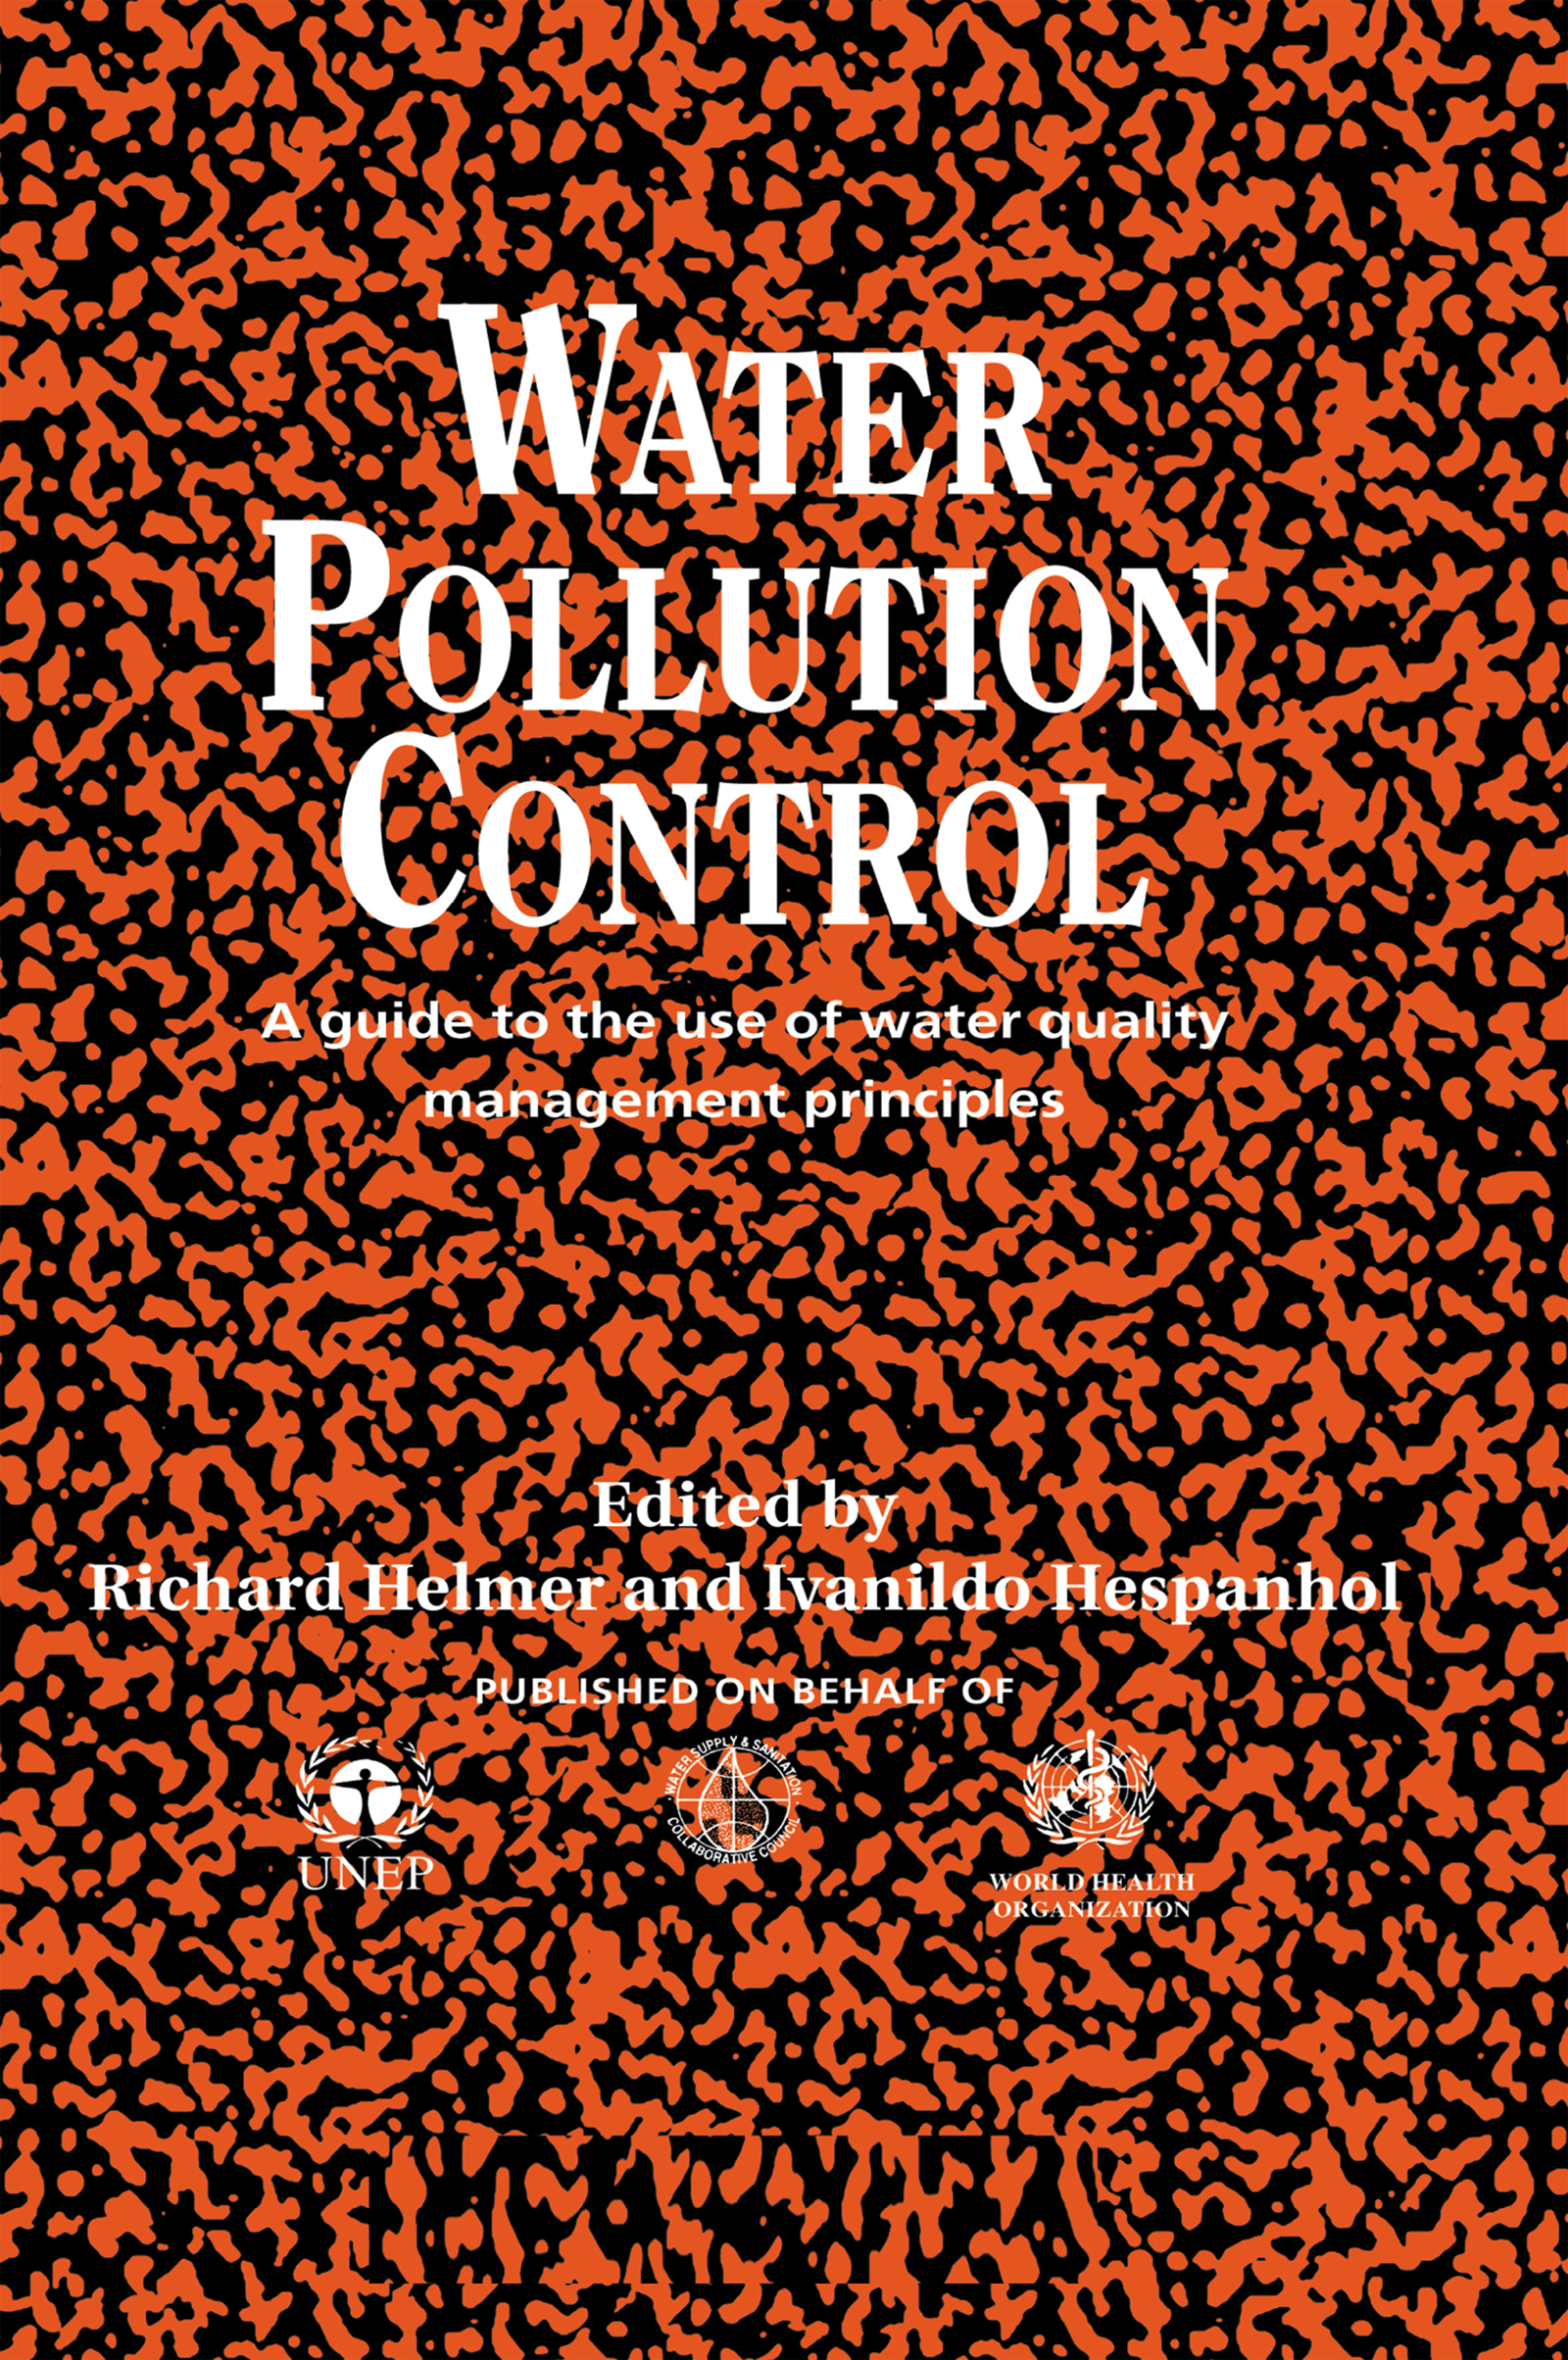 Download Ebook Water Pollution Control by Richard Helmer Pdf